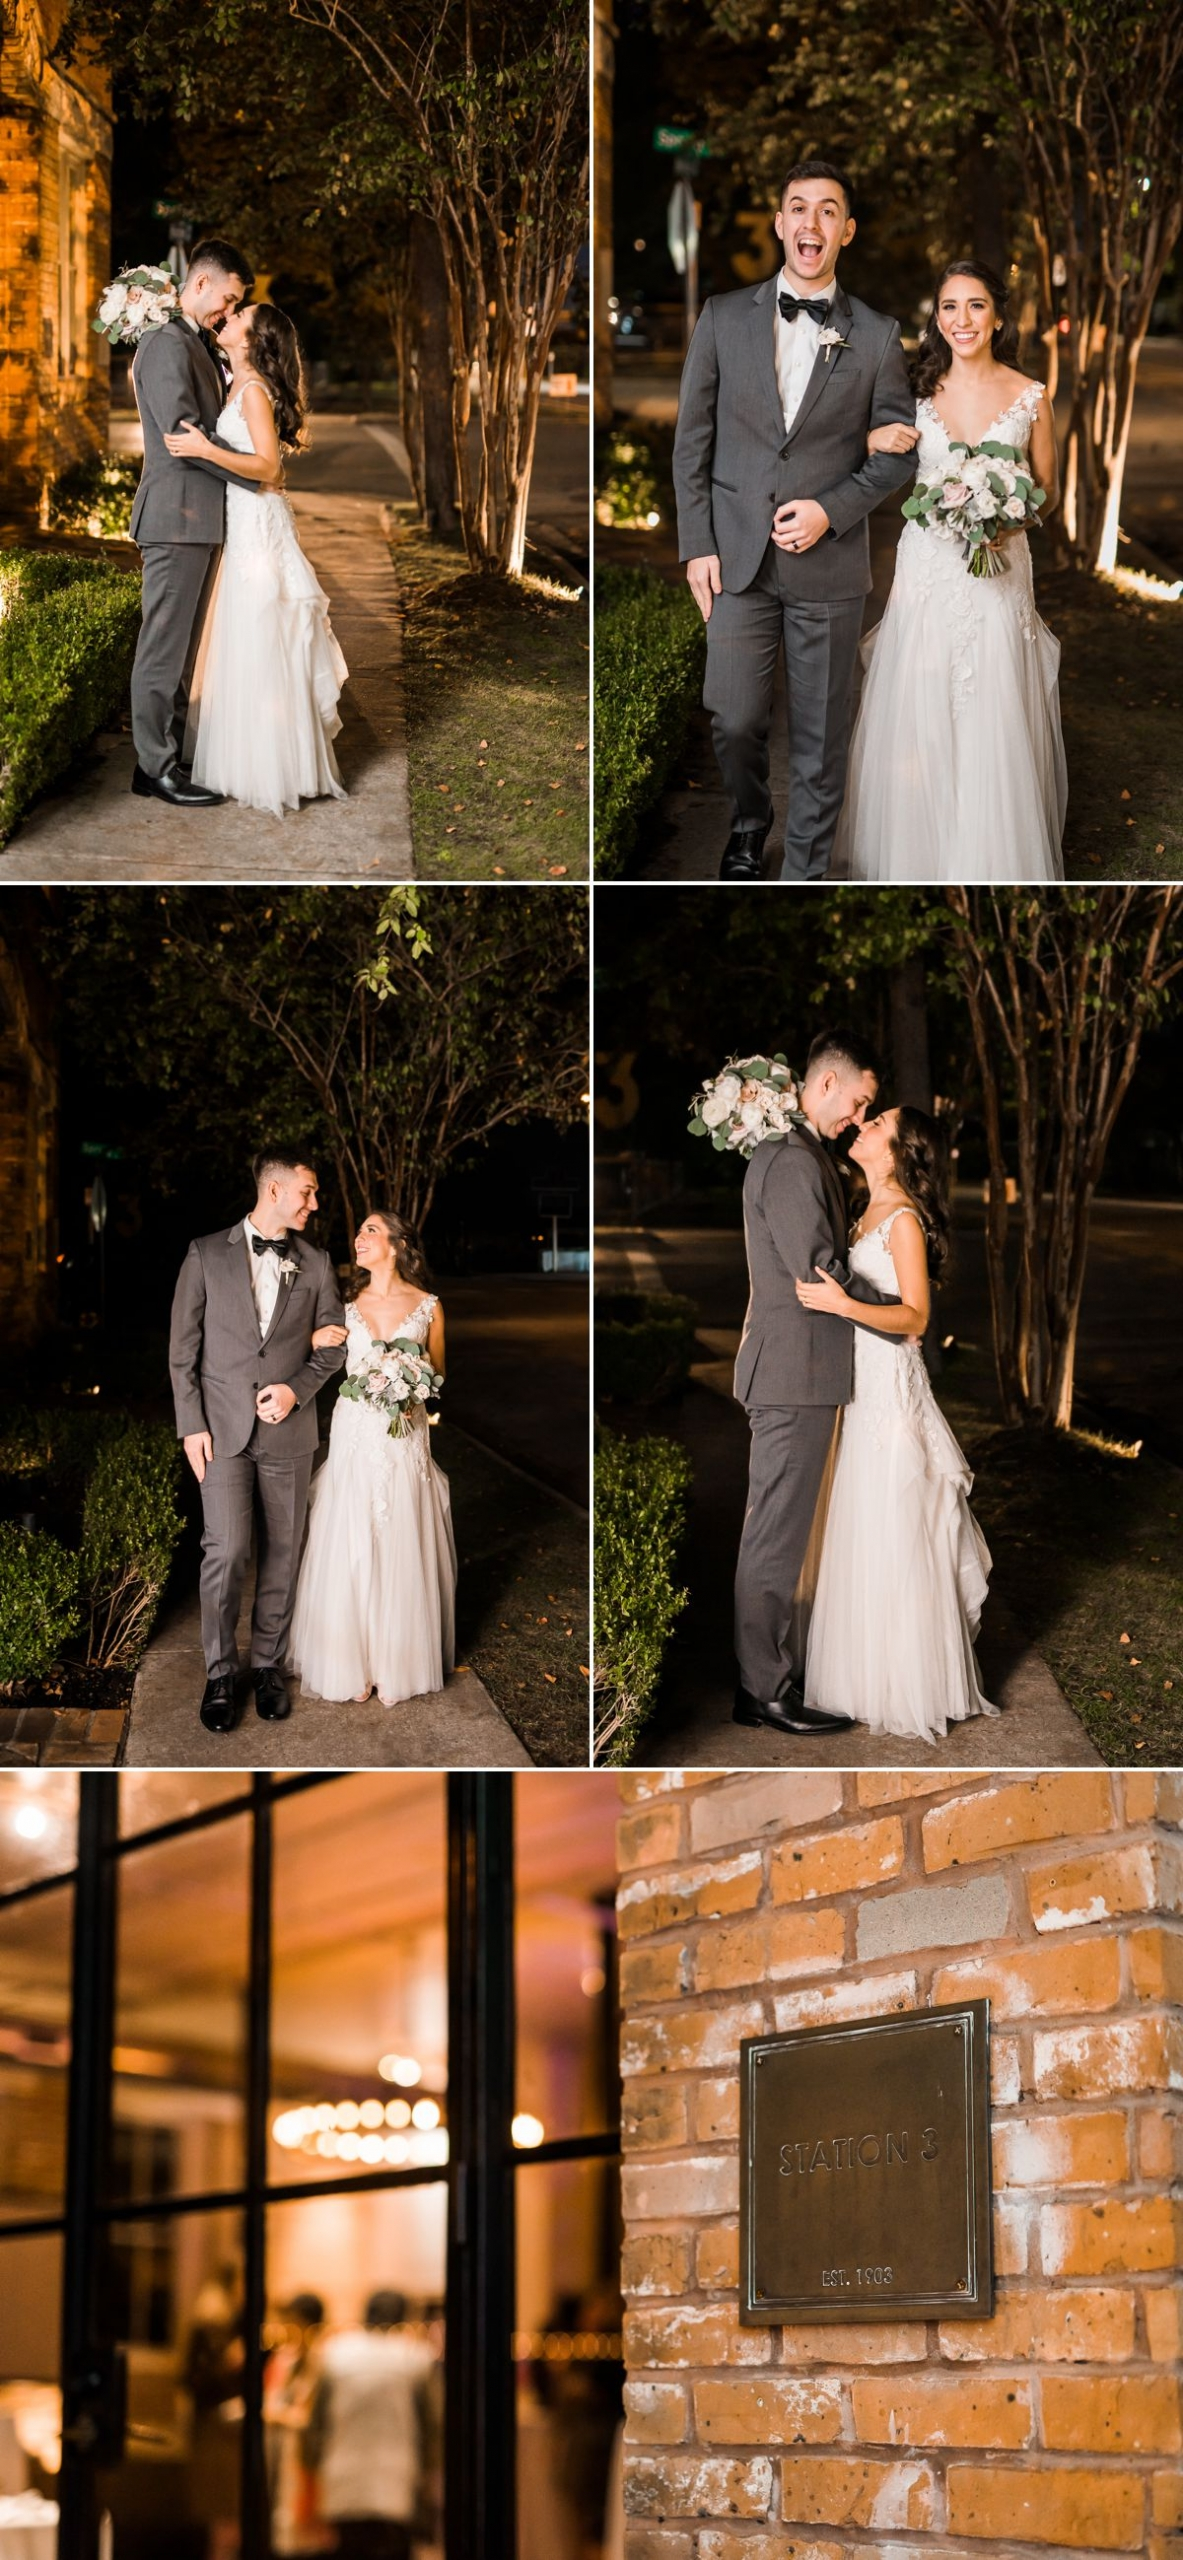 Station 3 Wedding - Bride and Groom Night Portraits - Houston Wedding Photographers